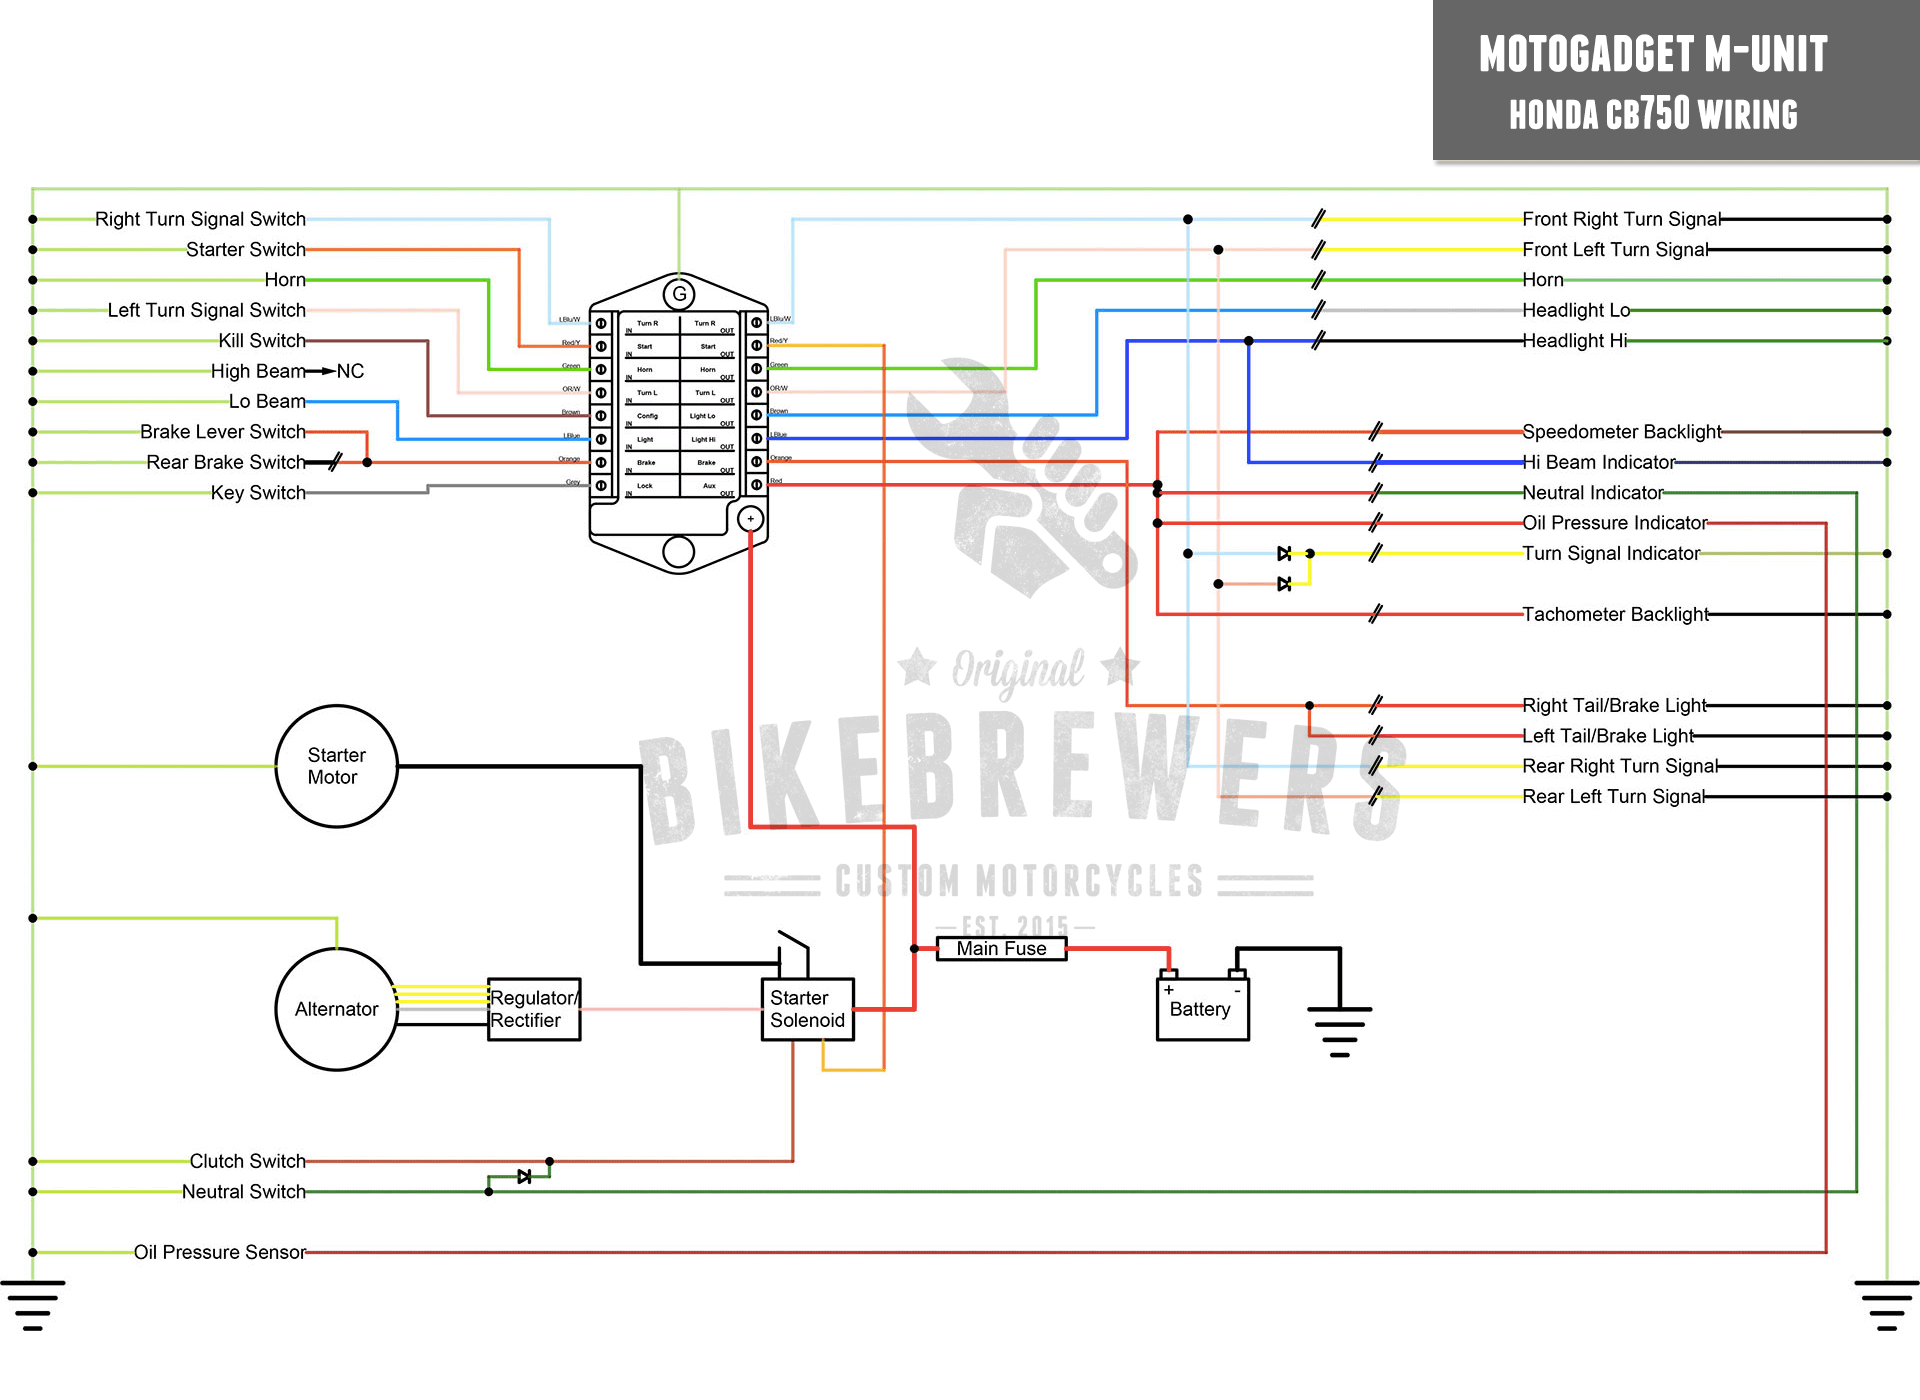 Cb1000c Wiring Diagram Schema Diagrams For Internet Honda St1100 Simple Site Of Things